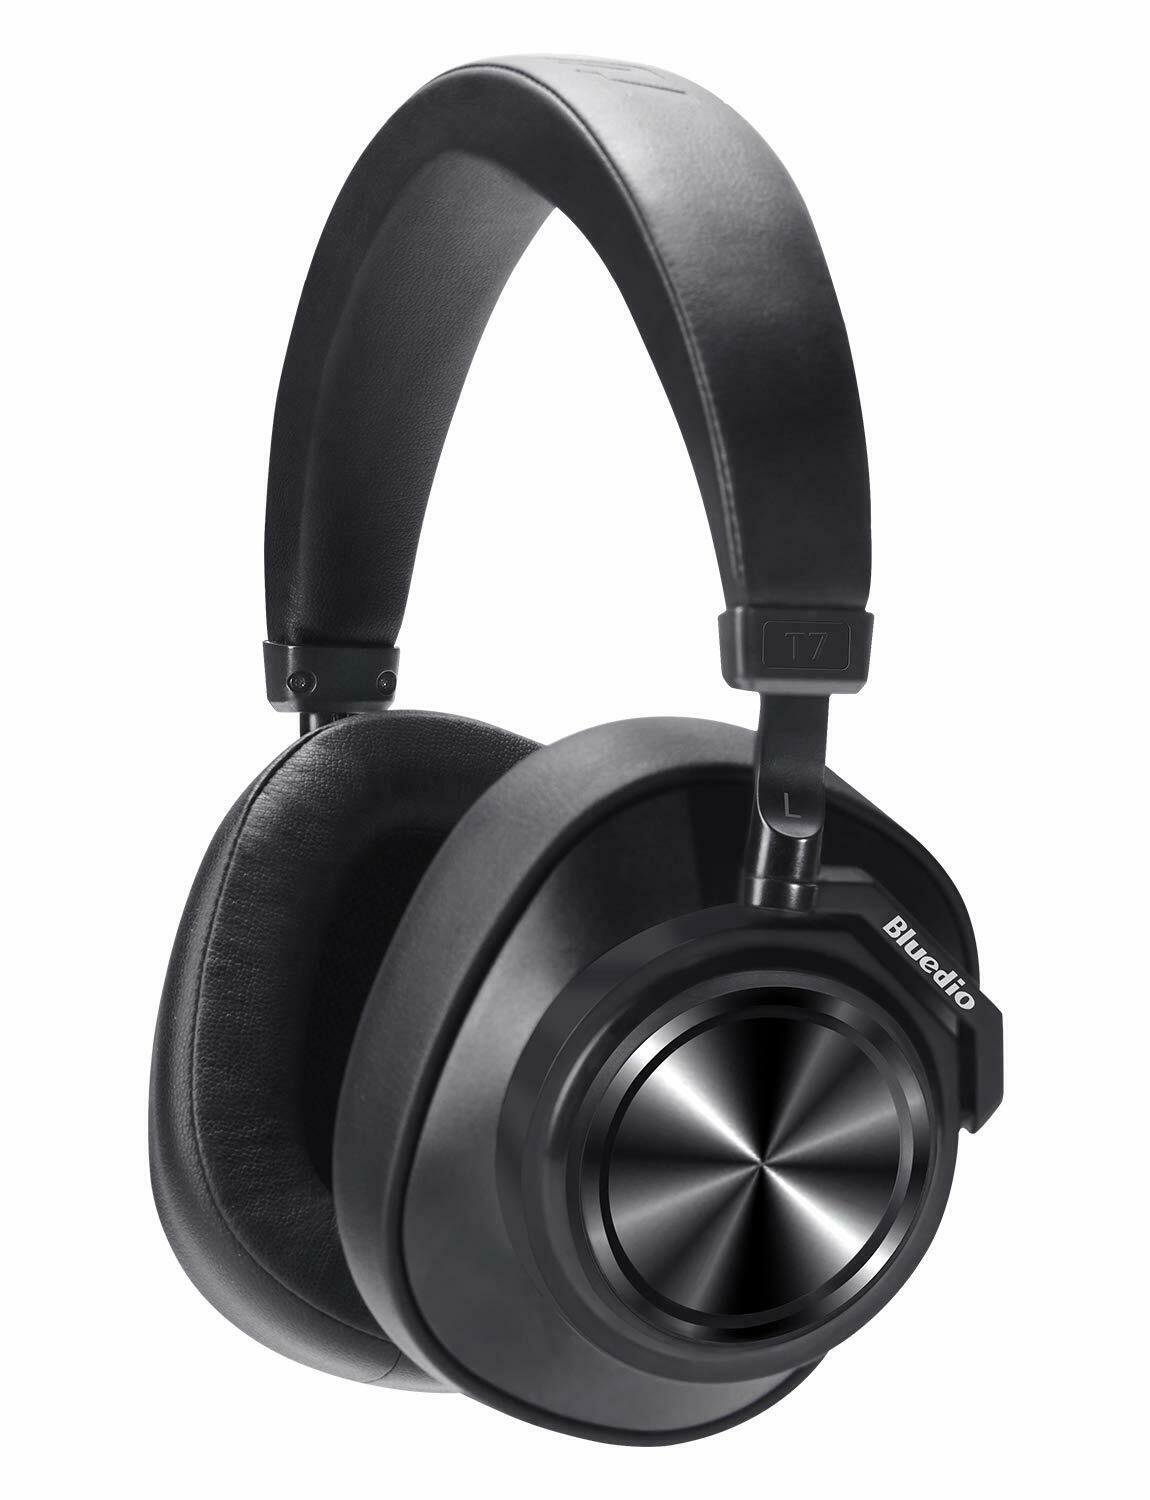 Bluedio T7 Active Noise-Cancelling Headphones (Black)